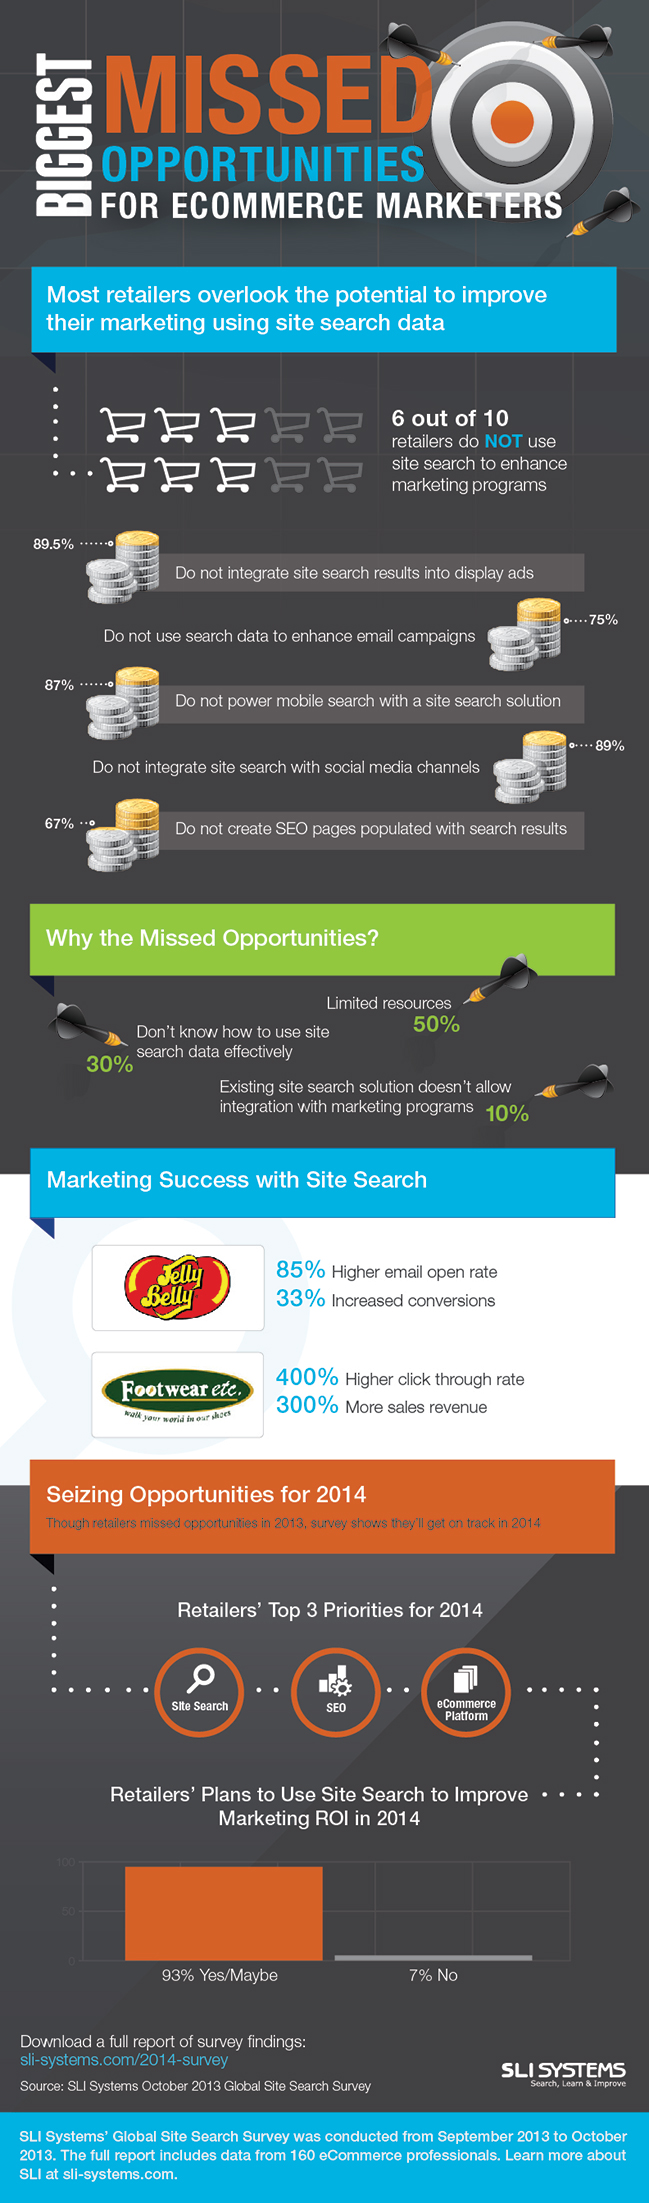 infographic_ecommerce_marketers_2014